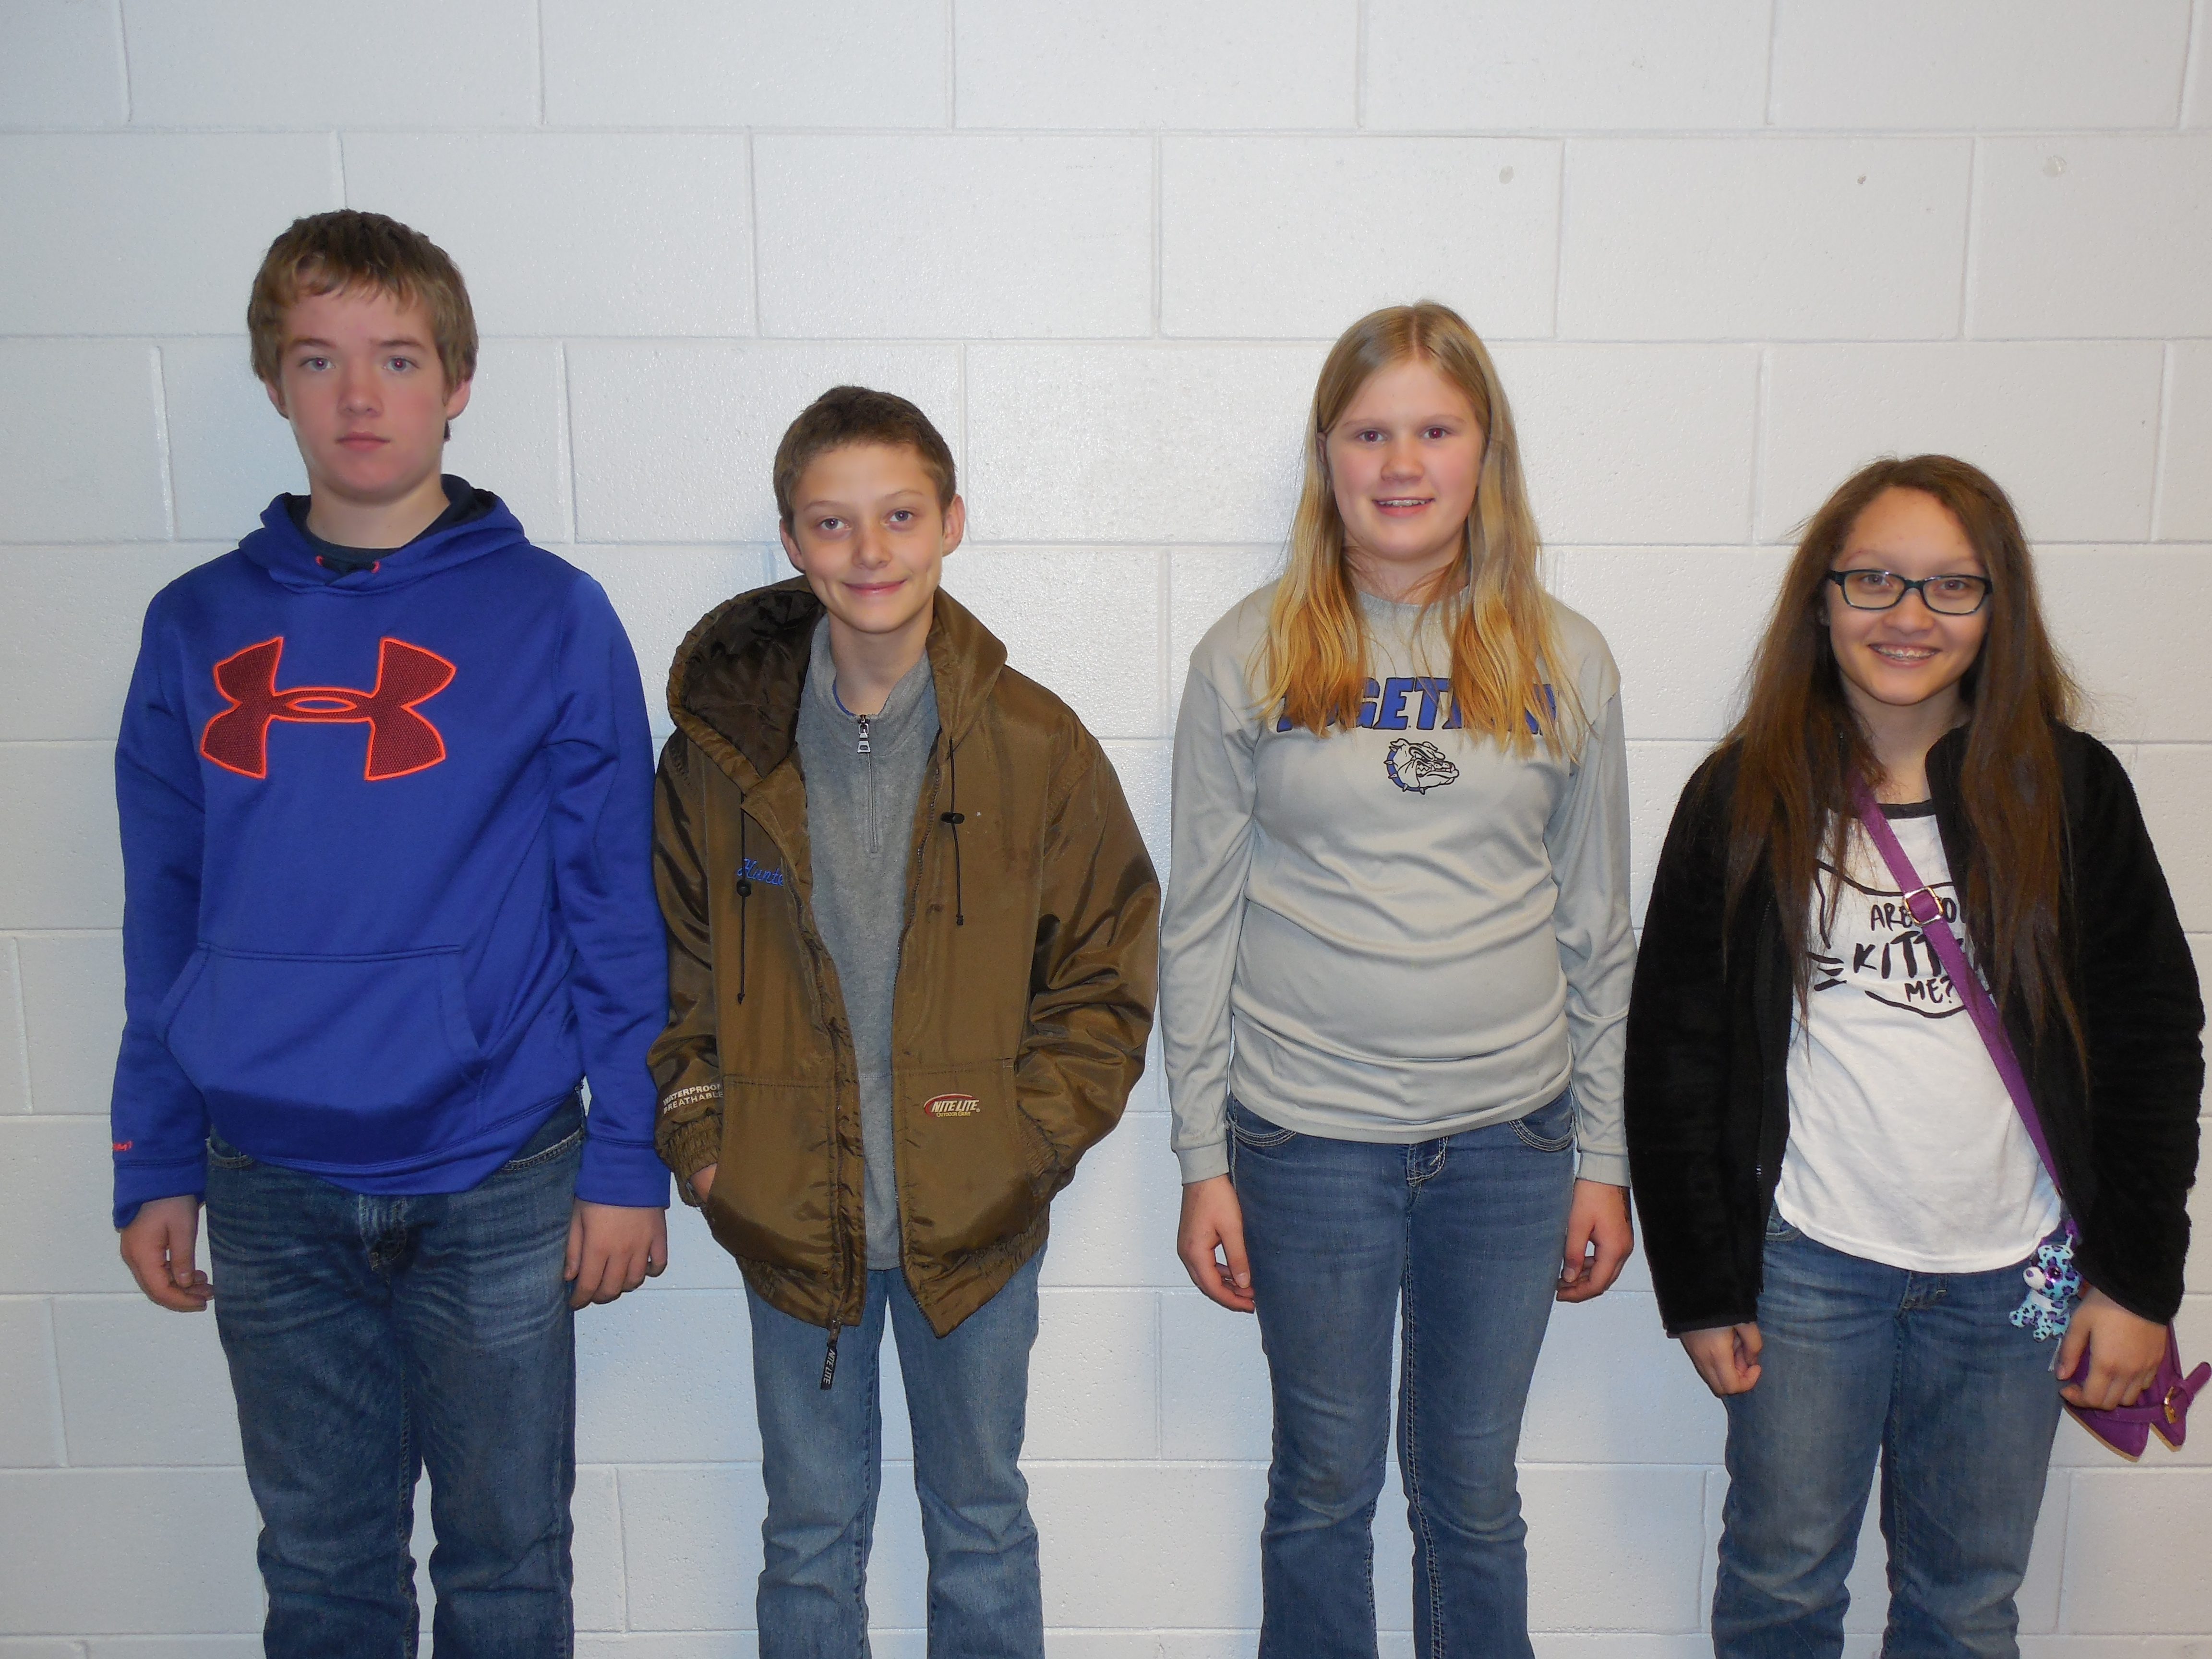 8th grade attendance winners:  Ryan Irwin, Hunter Elmore, Shawna Conatser, and Sidney Alexander (Haleigh Irwin—not pictured).